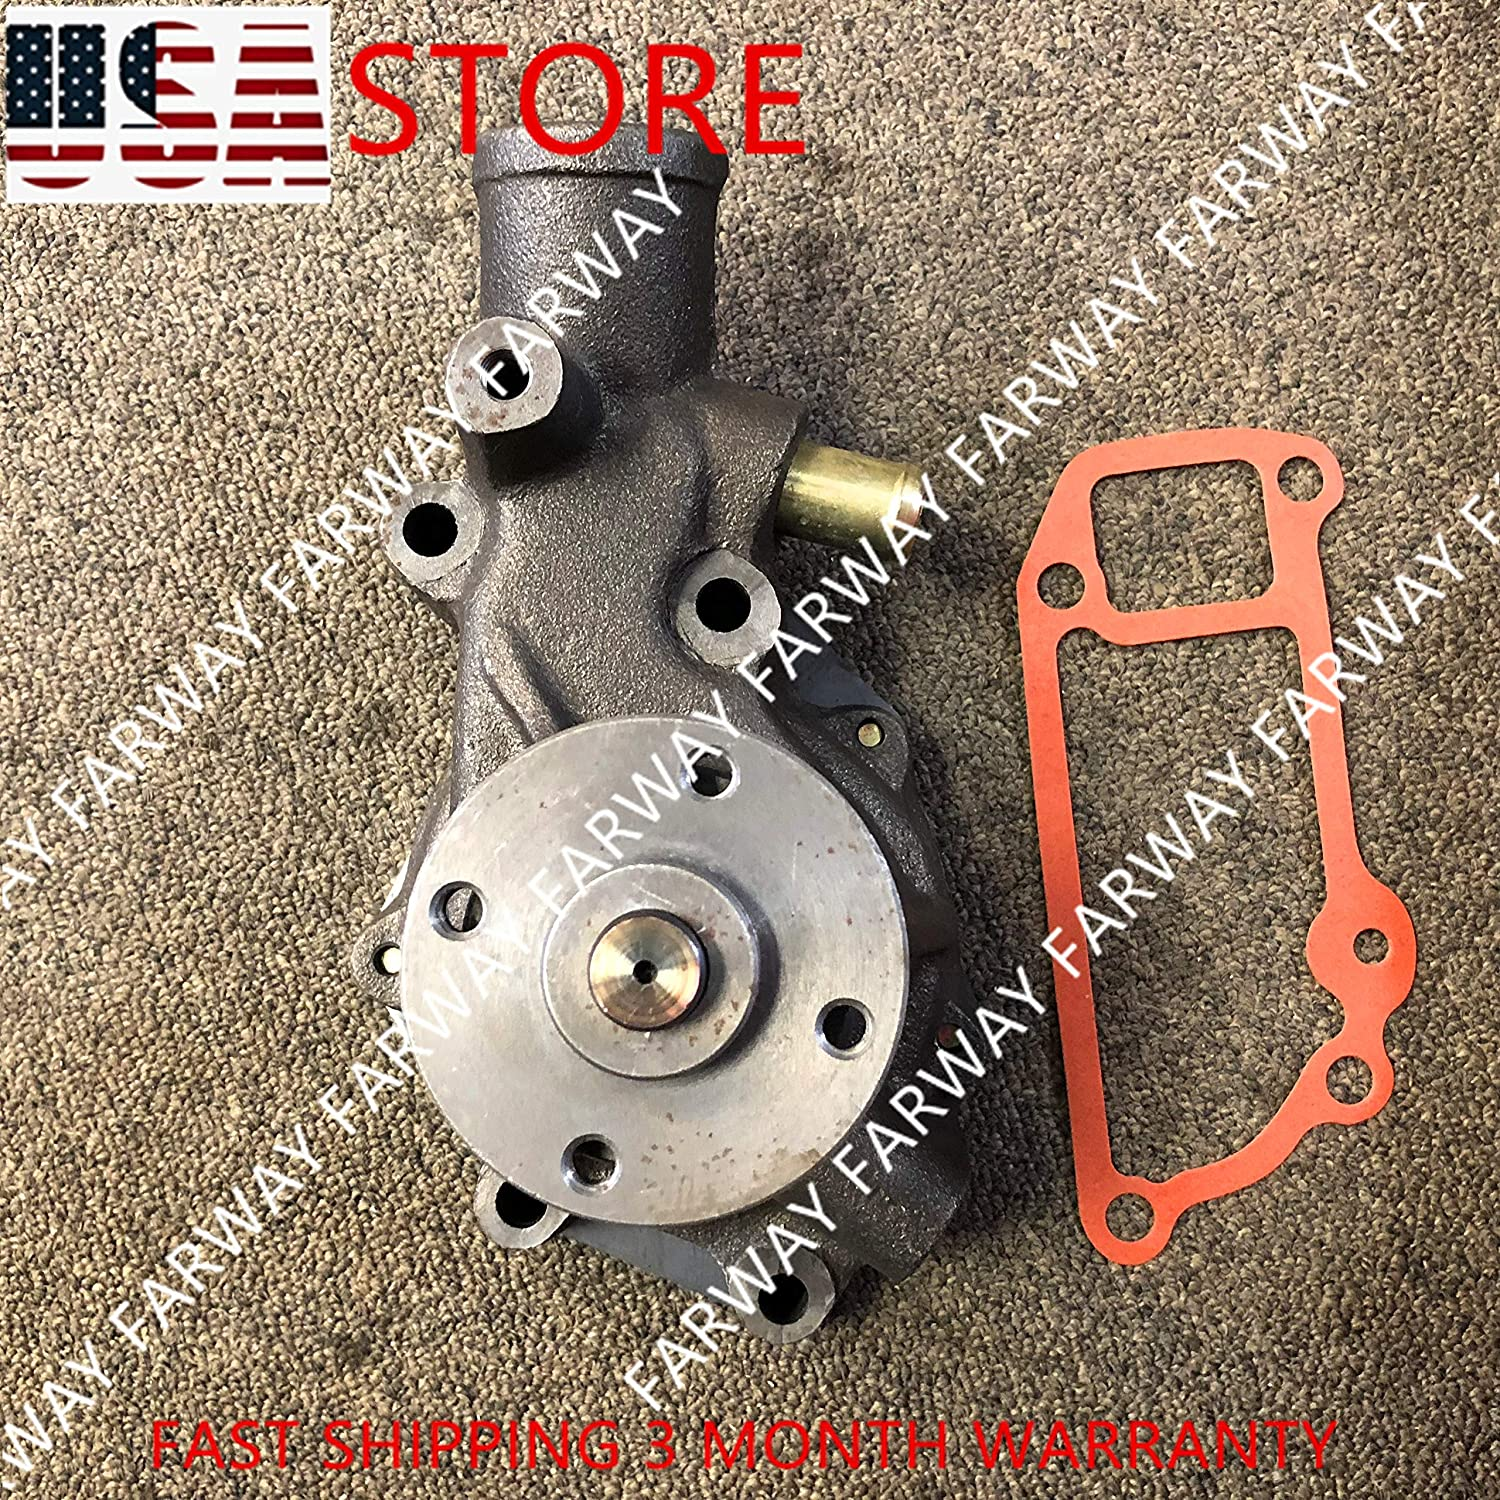 Water pump for Hitachi Excavator 8972511841 w// ISUZU Engine 4BD1 8906-6201 EX100